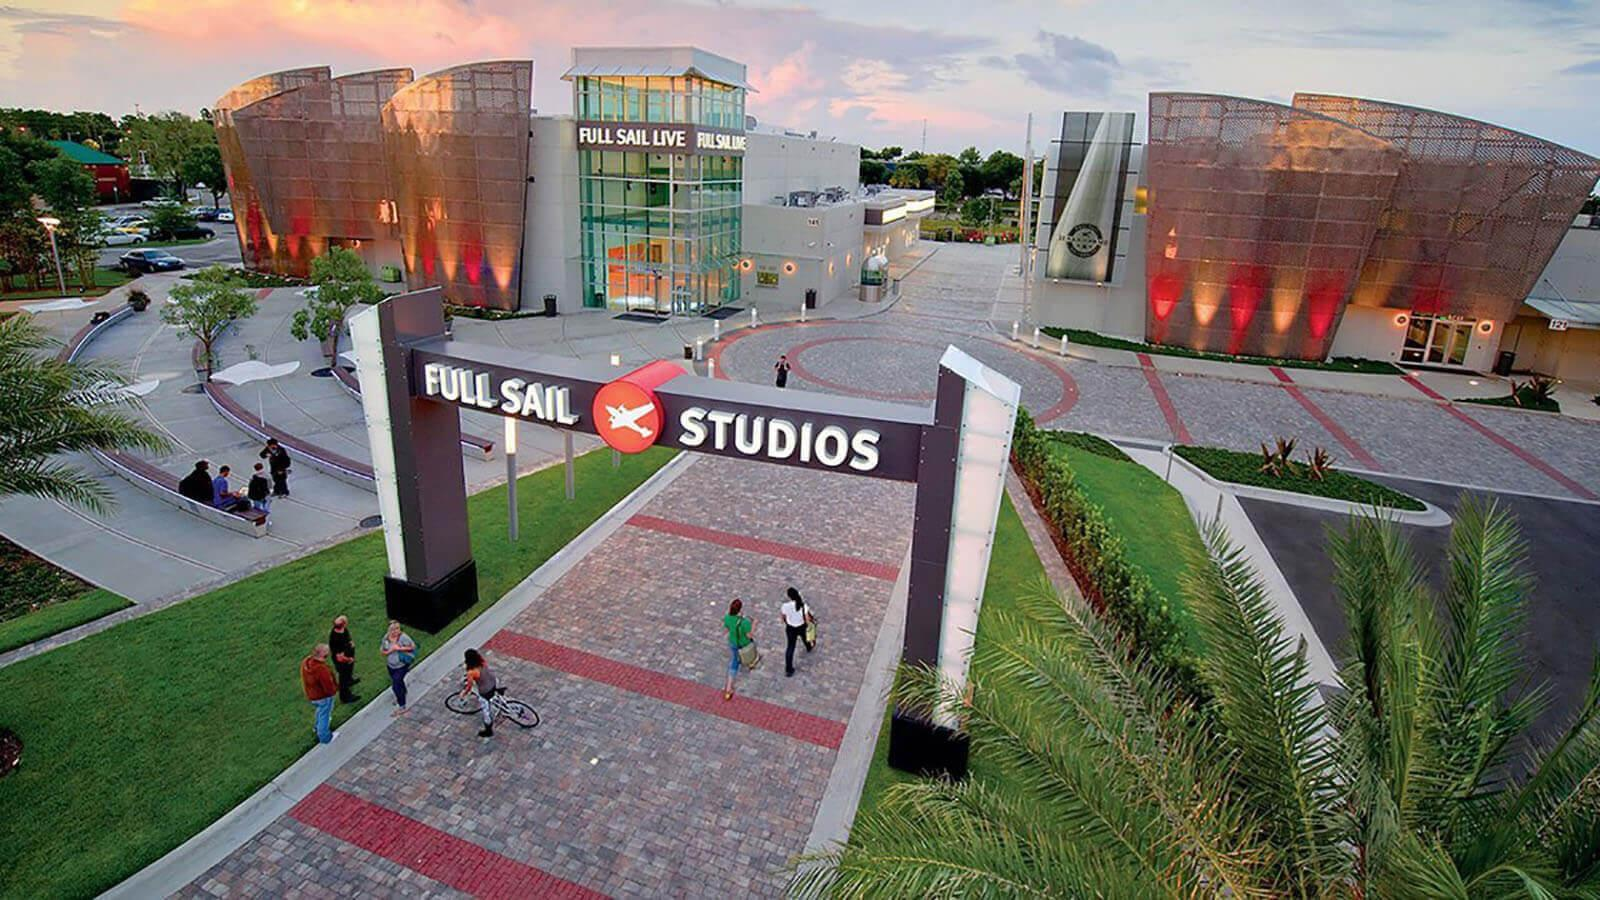 Innovation Continues at Full Sail During COVID-19 Crisis - Hero image